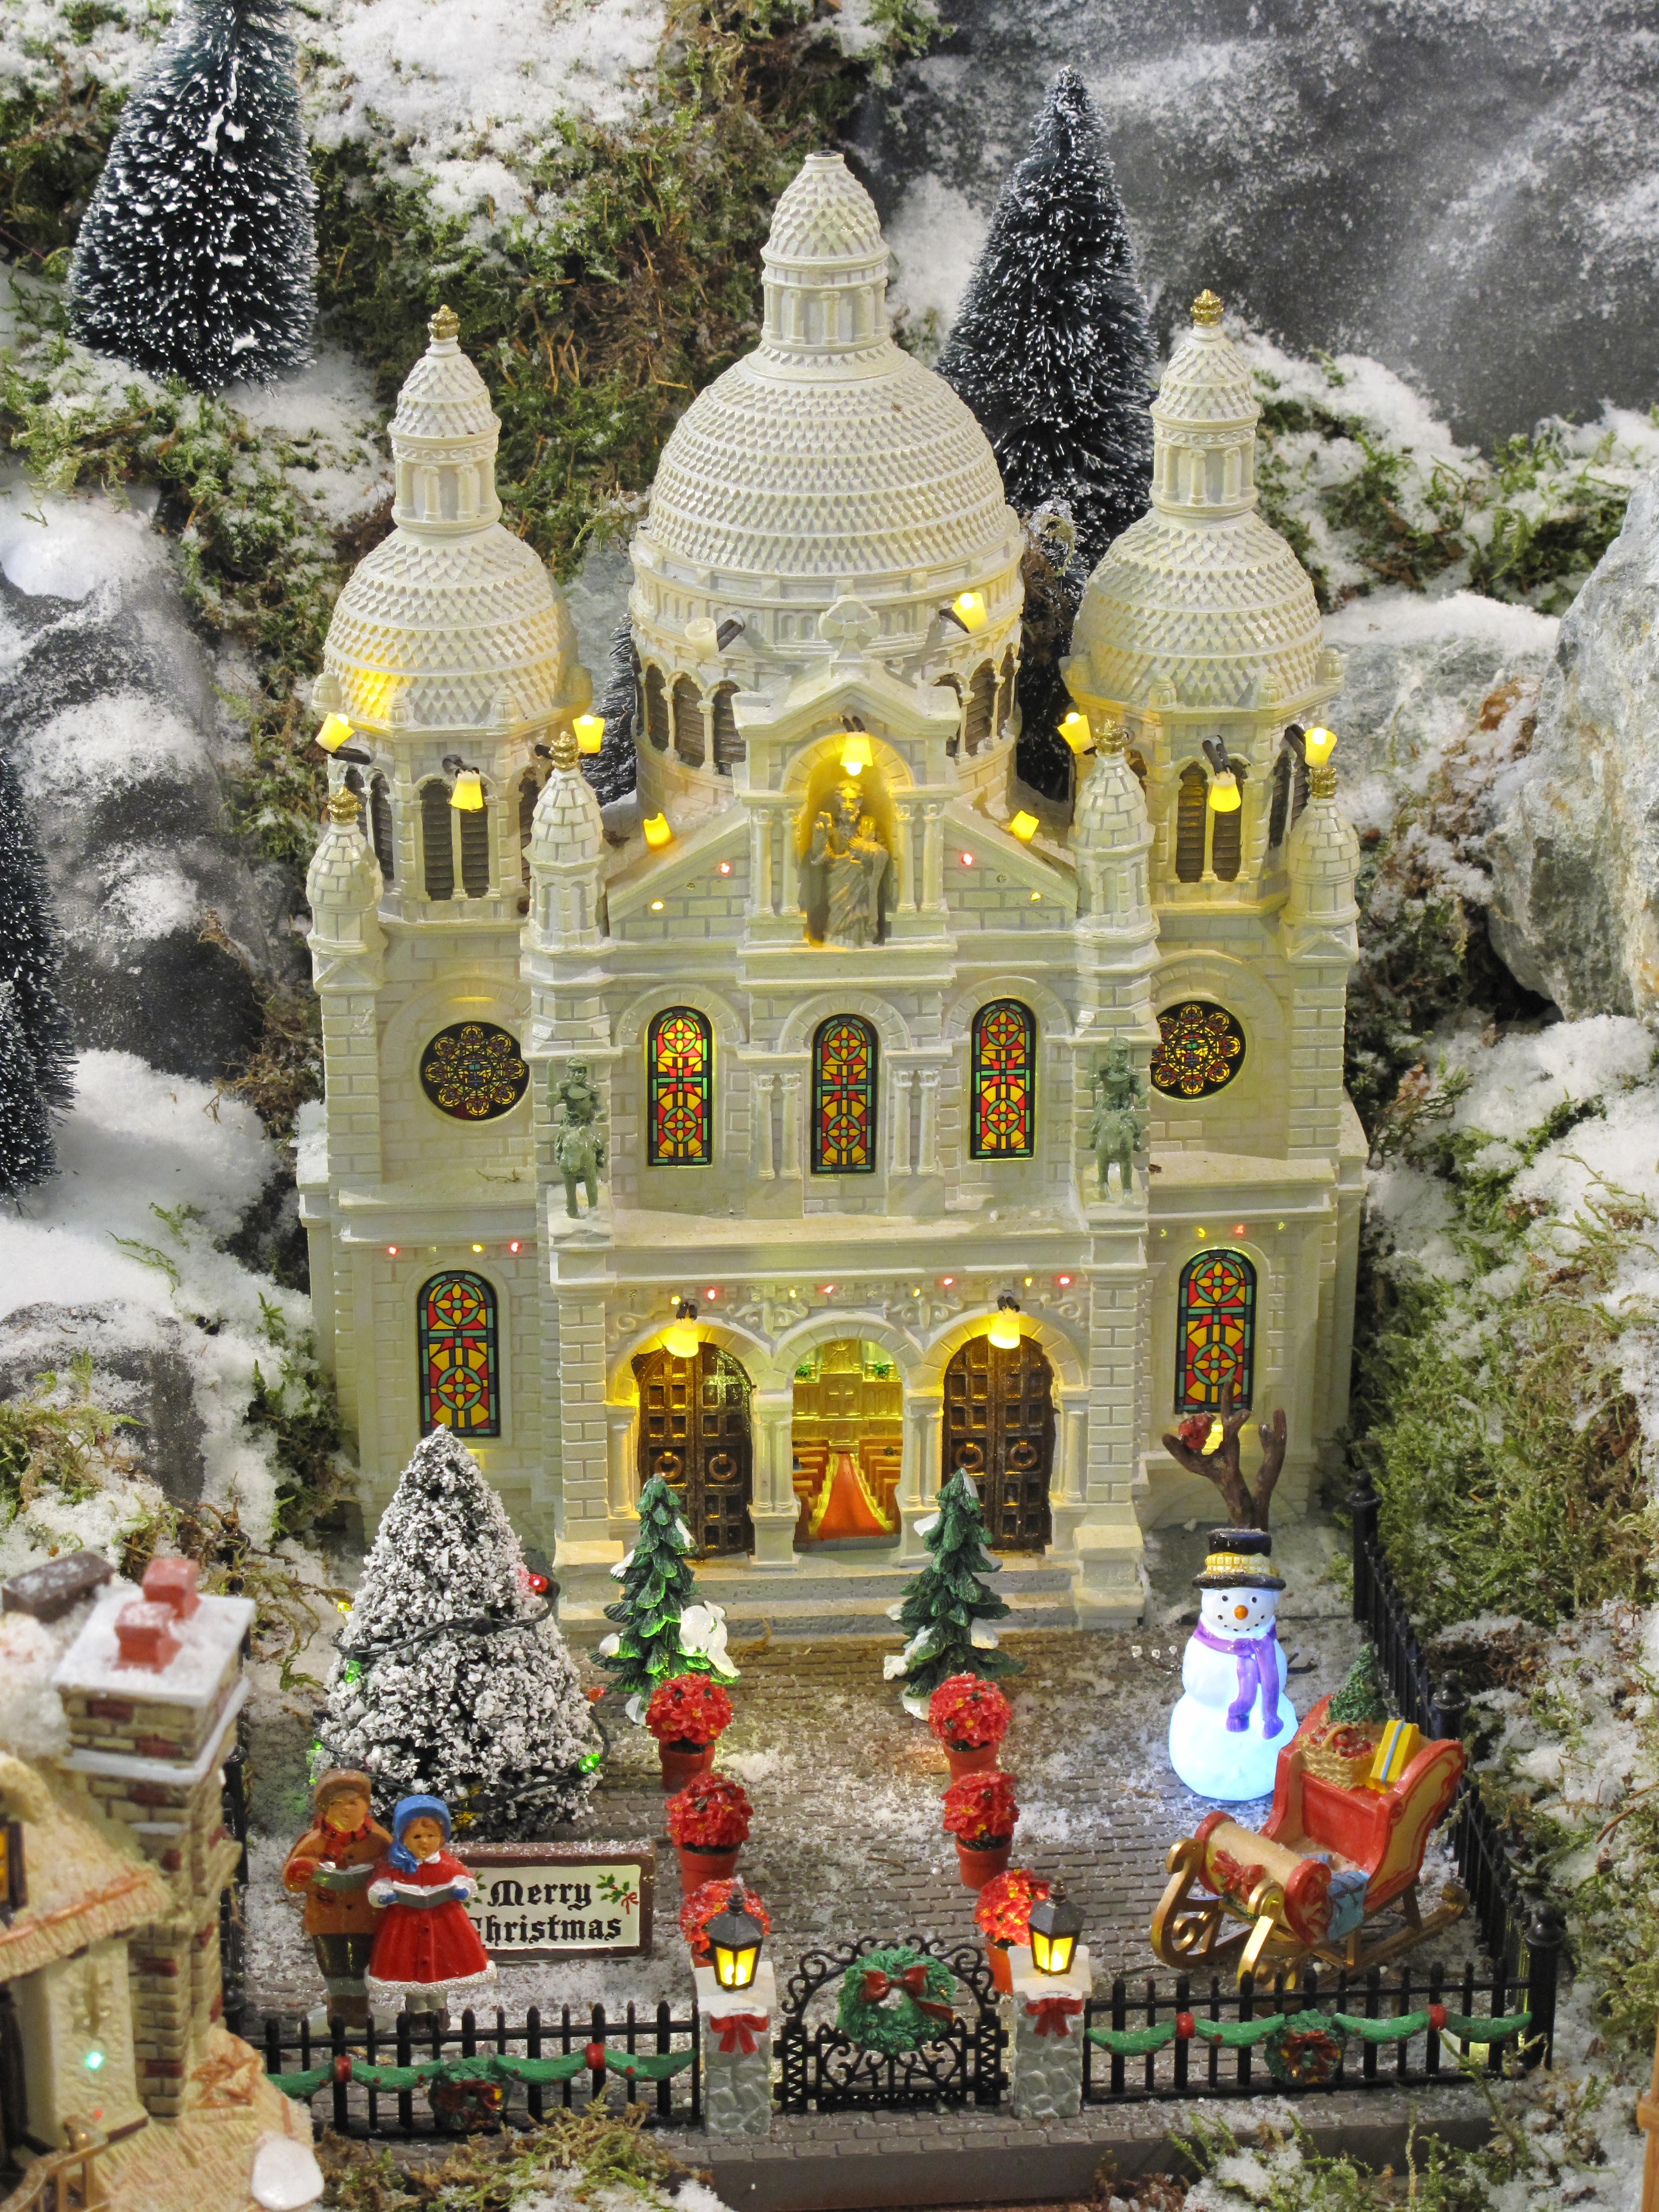 File Model of church sold as Christmas decoration Wikimedia